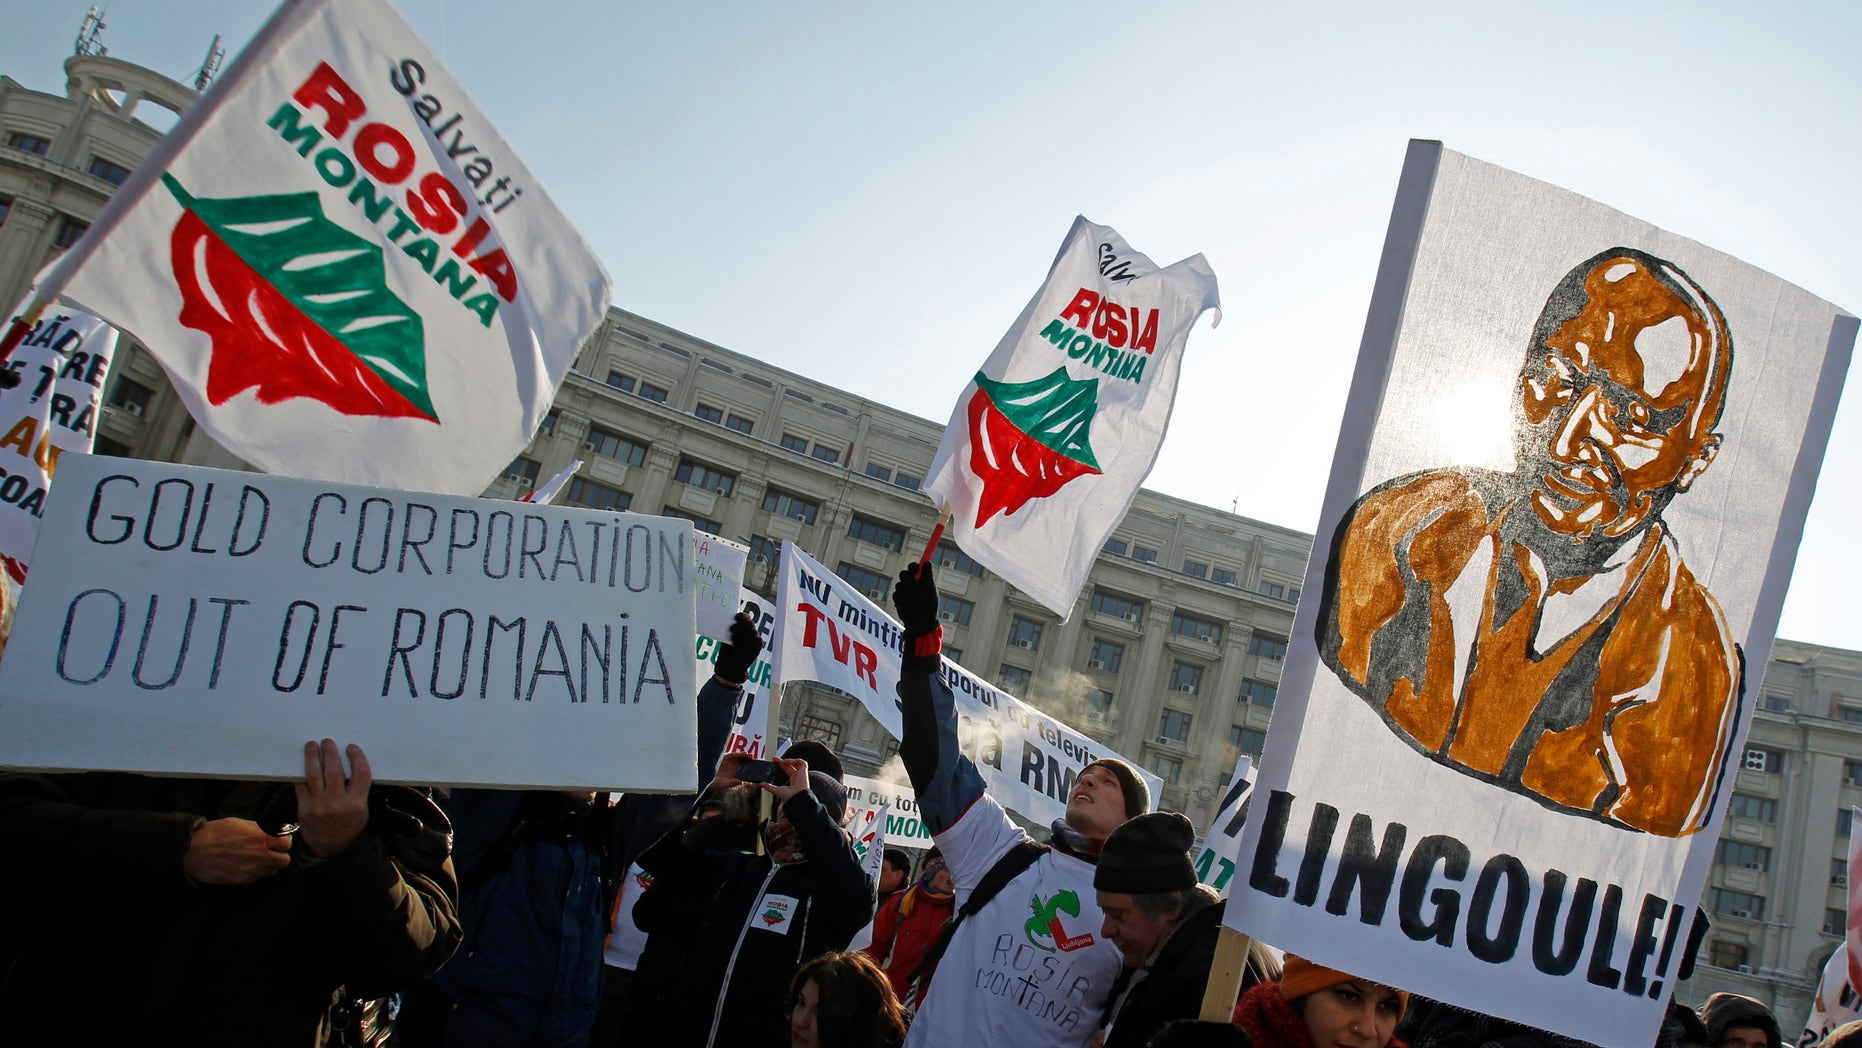 """January 28, 2012 - FILE photo of demonstrators waving flags that read """"Save Rosia Montana"""" and a banner depicting a gold figurine of Romania's President Traian Basescu, an open supporter of the gold mine project, during a protest in front of the Parliament palace in central Bucharest.  Hundreds of Romanians protested against a plan to set up Europe's biggest open-cast gold mine in the western Romanian town of Rosia Montana."""